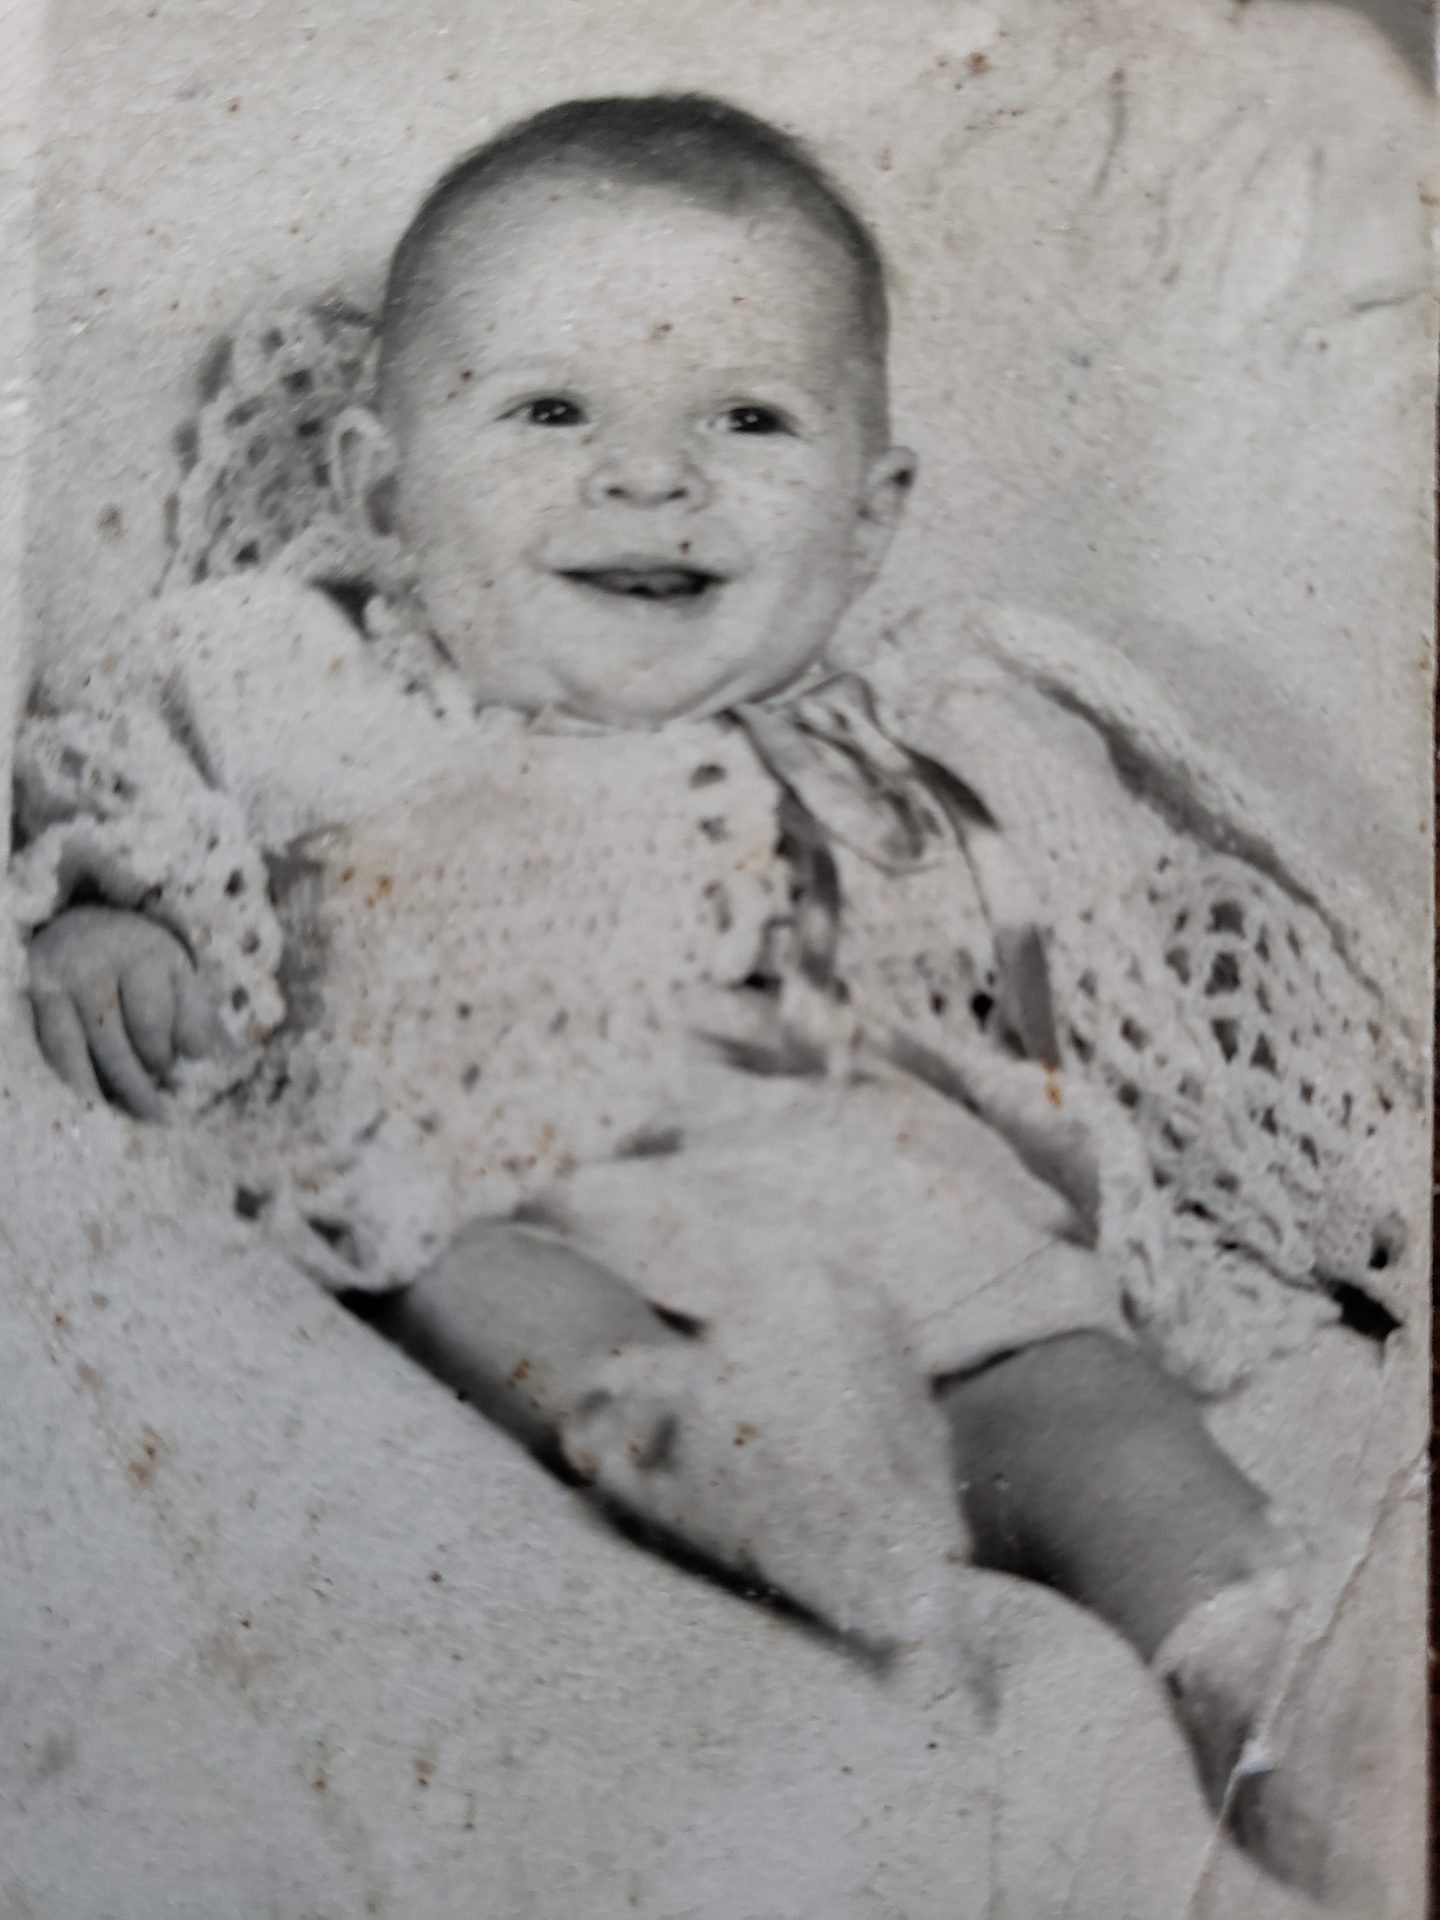 Sherry Phillips<br /> approximately 6 months old